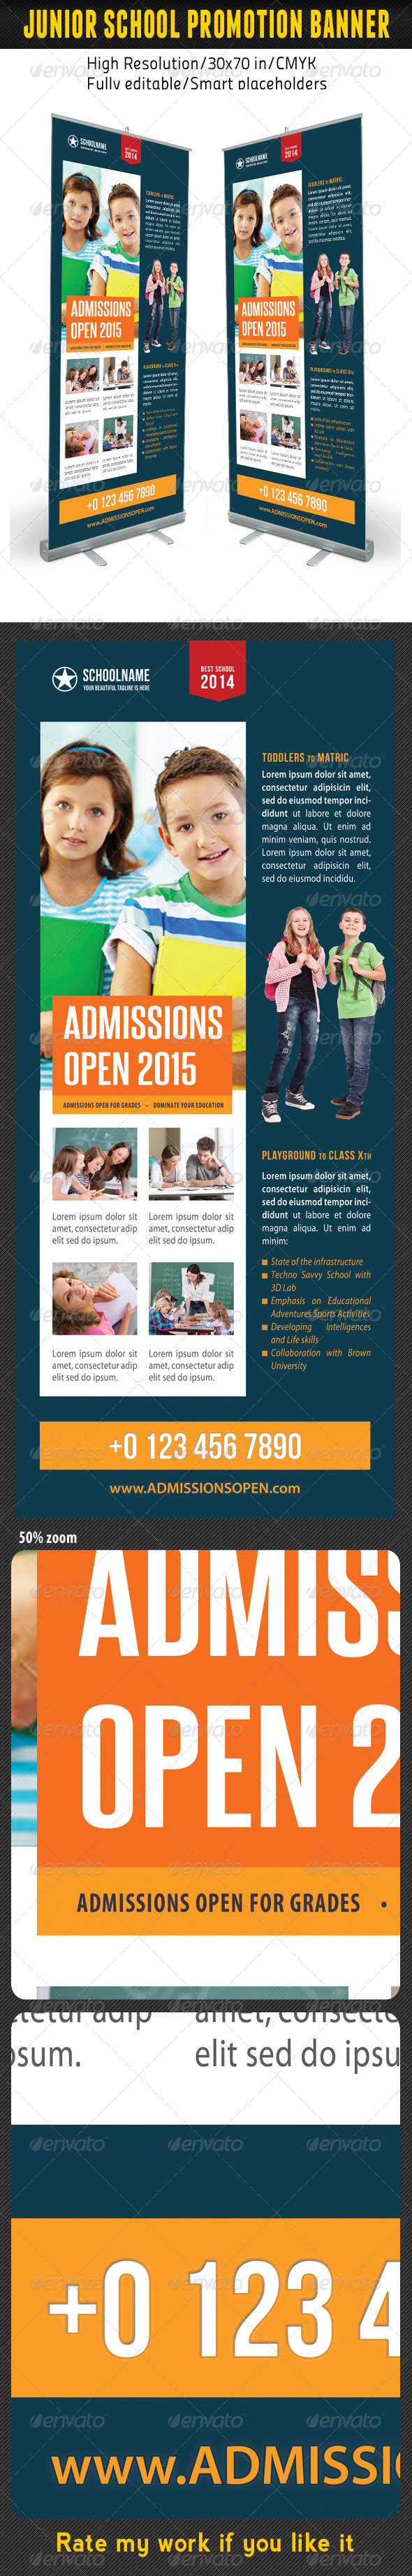 GraphicRiver Junior School Promotion Banner Template 09 7186658